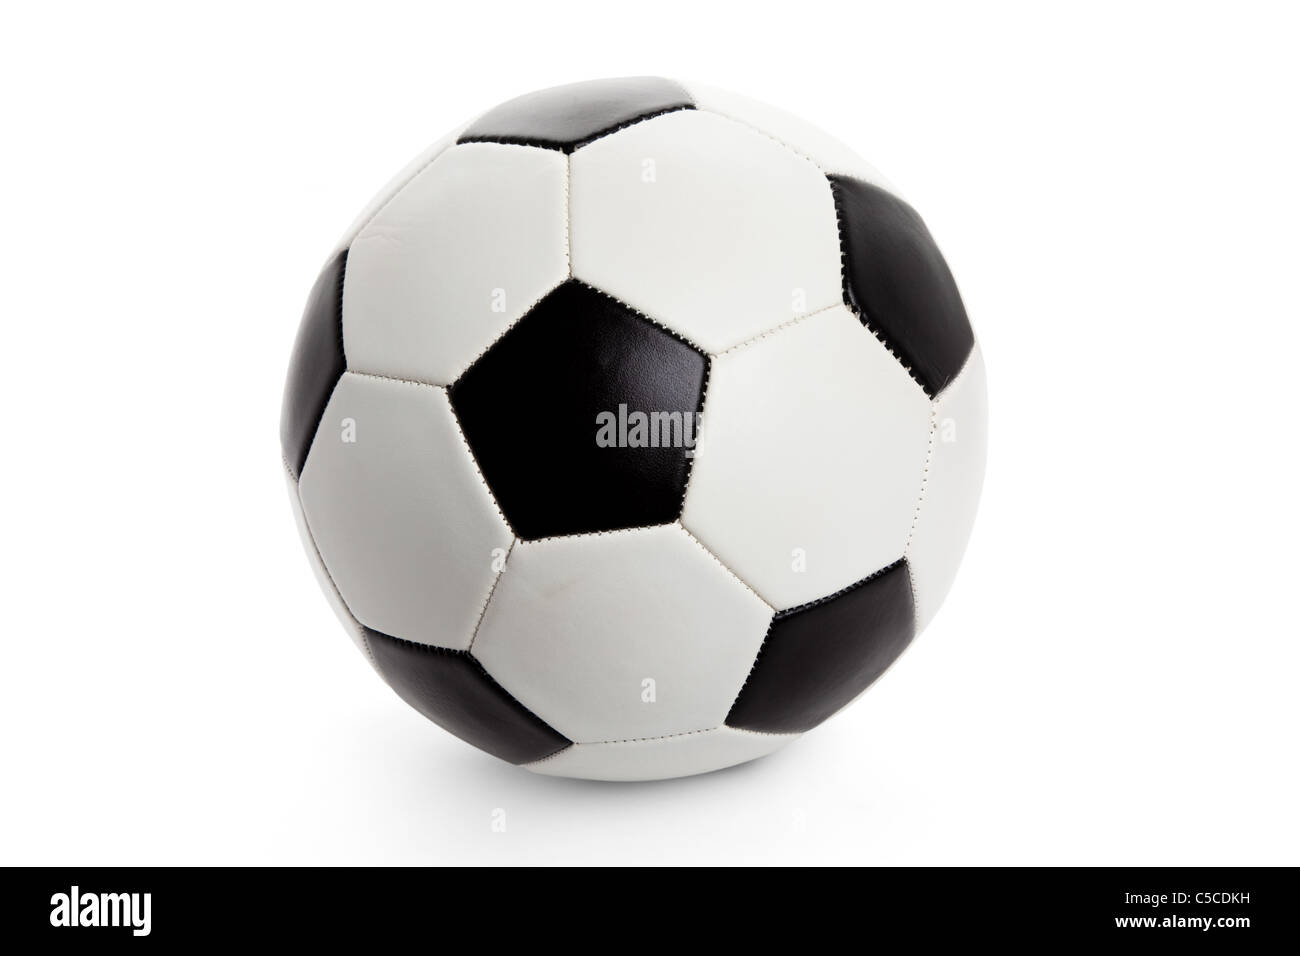 Soccer Ball, football Isolated on White Background - Stock Image